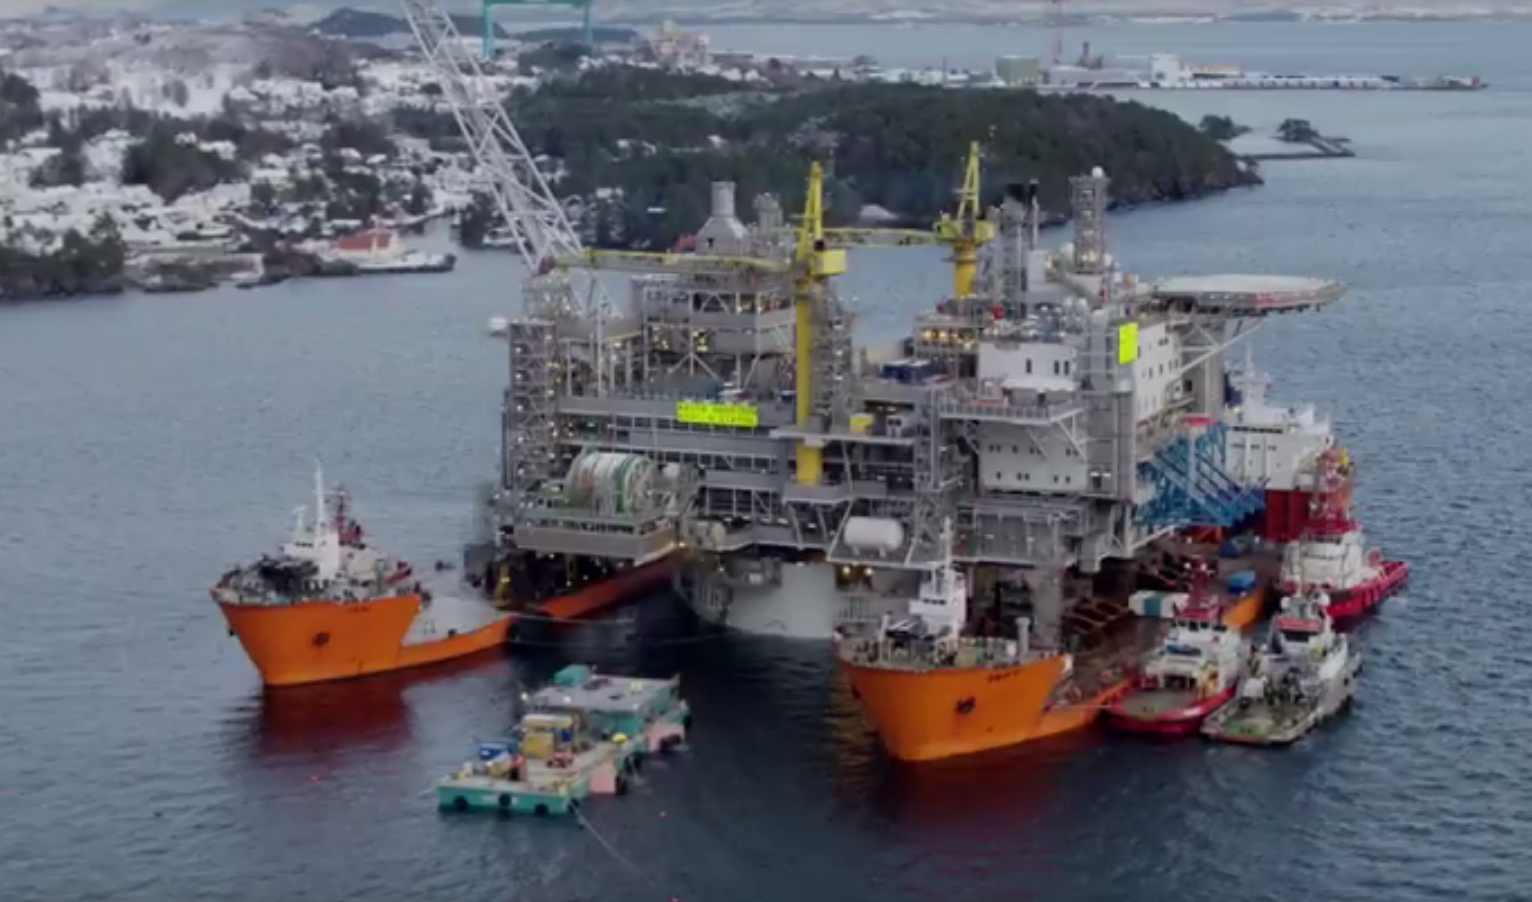 VIDEO: What Statoil did in 2017